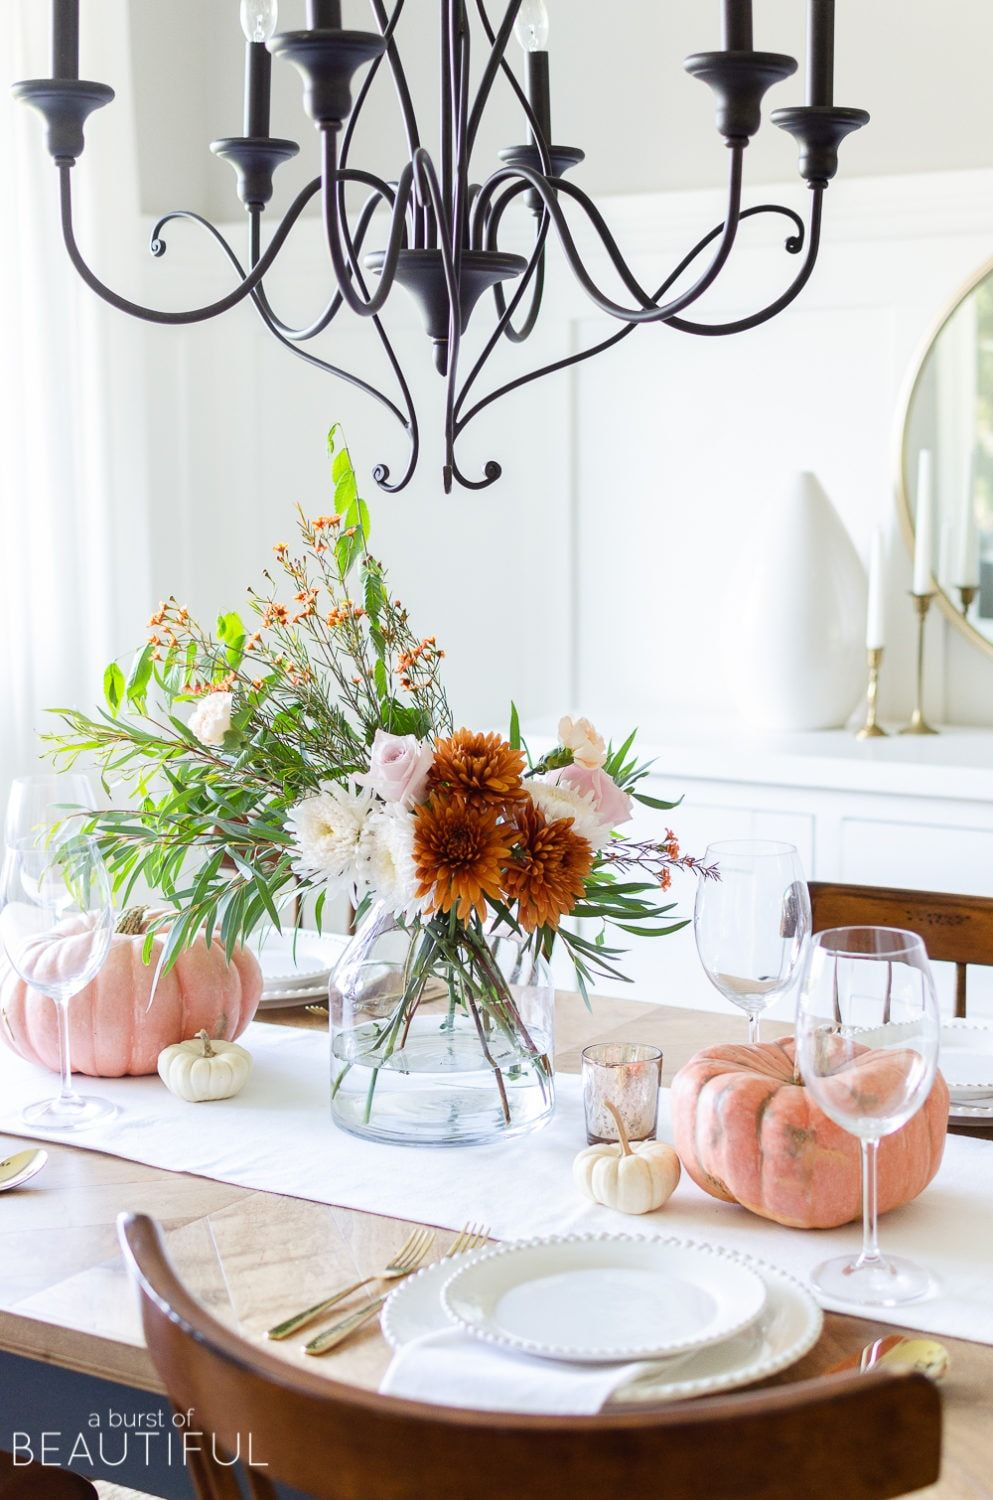 35 Thanksgiving Table Centerpieces That Are Seriously Gorgeous images